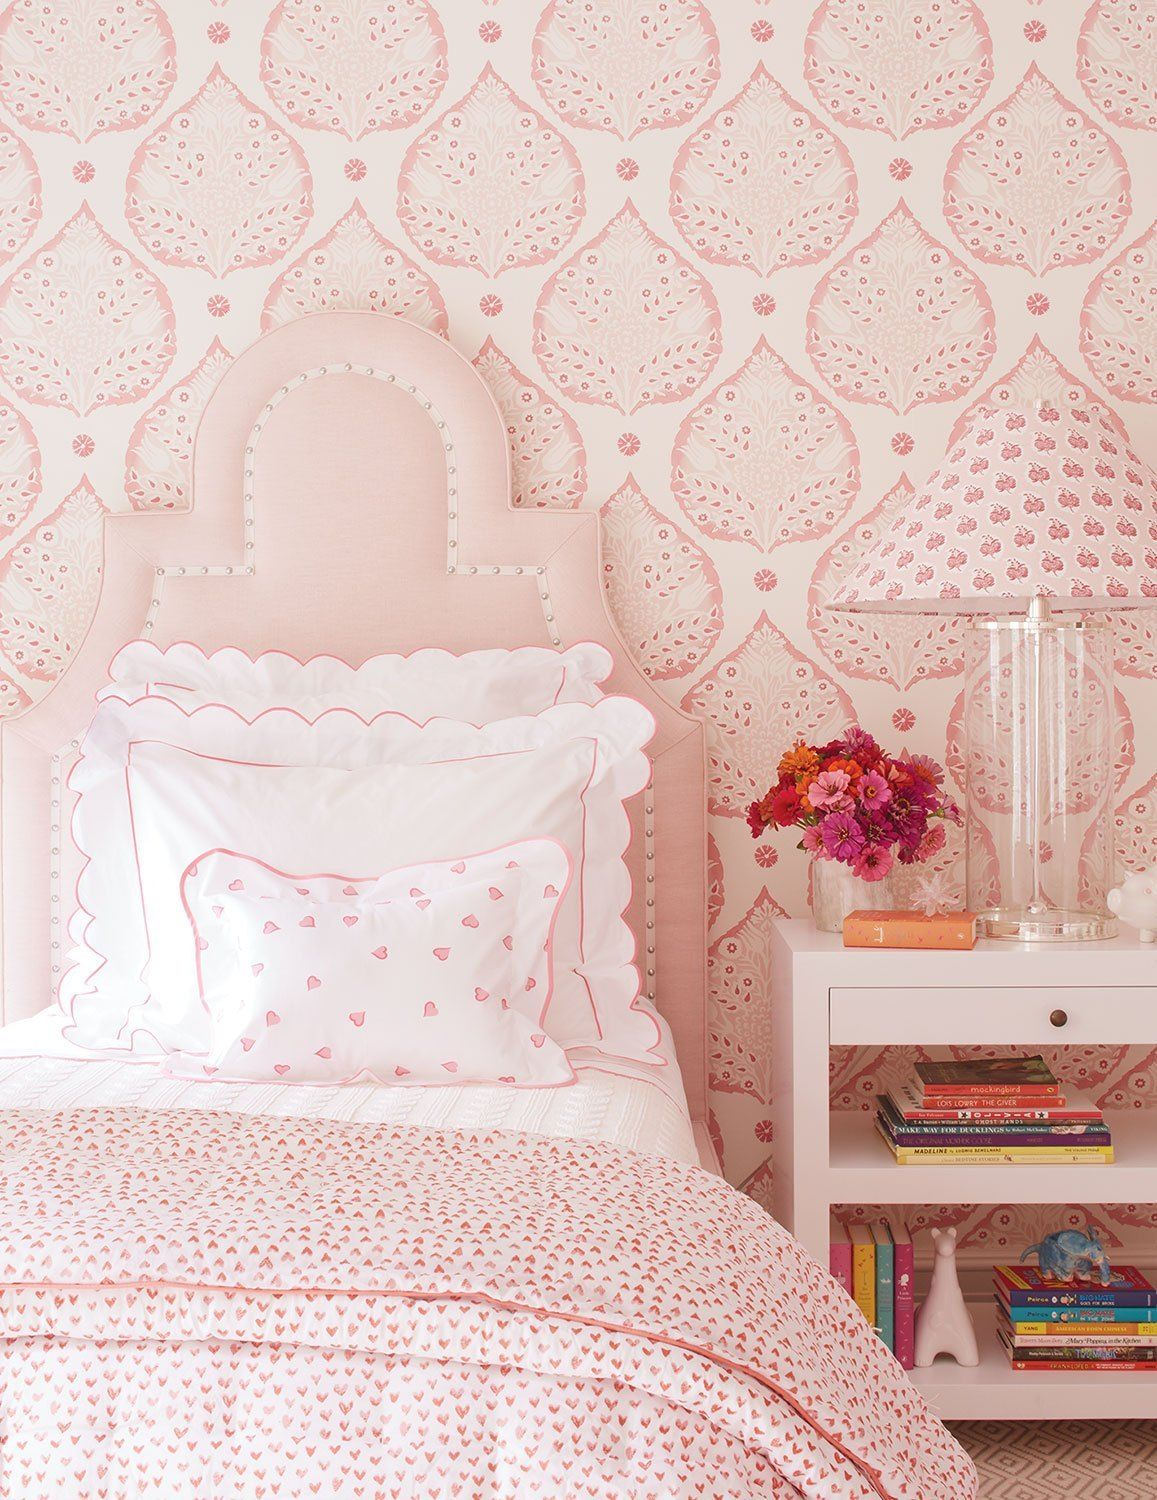 Ashley Whittaker Reinventing the Classics Pink bedroom